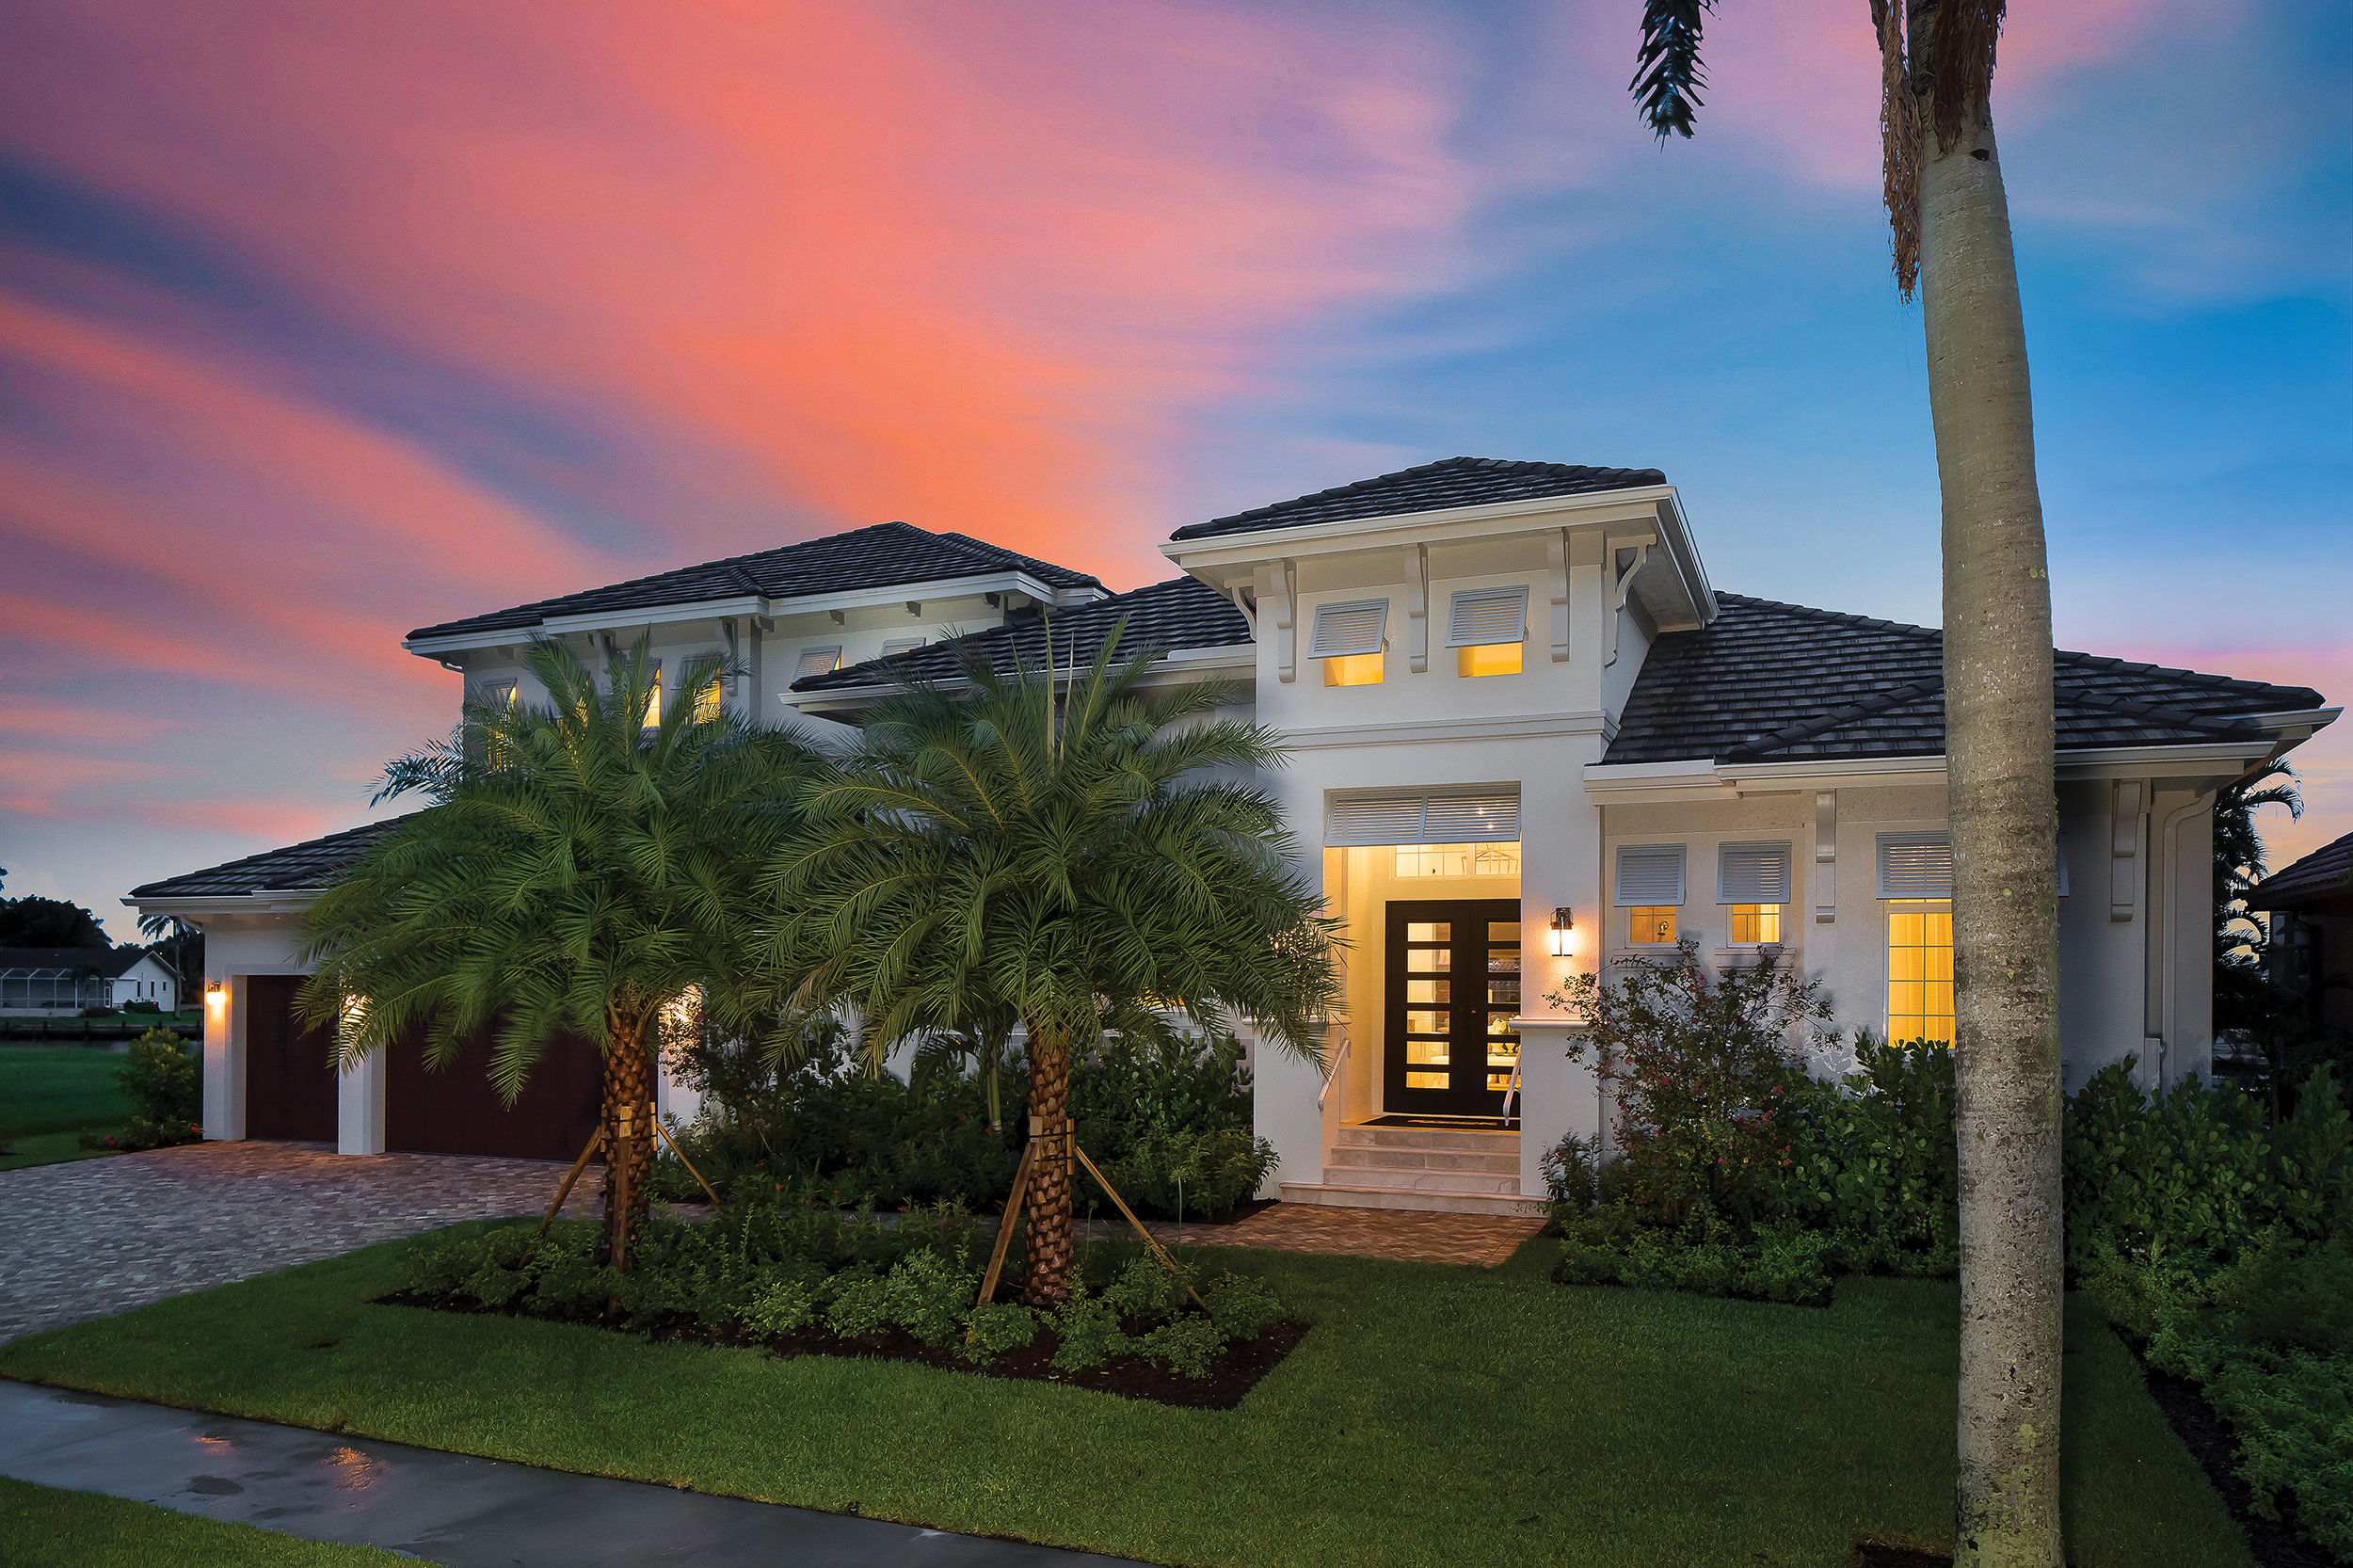 The home's inviting exterior, created by Southwest Florida Design, is a beautiful blend of West Indies style and classic Florida charm. The home is balanced but not symmetrical, creating a more casual appeal perfect for its island location. Accents like the corbels and louvered awnings over the windows add visual interest and are in keeping with the tropical aesthetic. The lush landscaping that surrounds the house creates the feeling of an oasis and the combination of mature and new trees helps balance this new construction home.